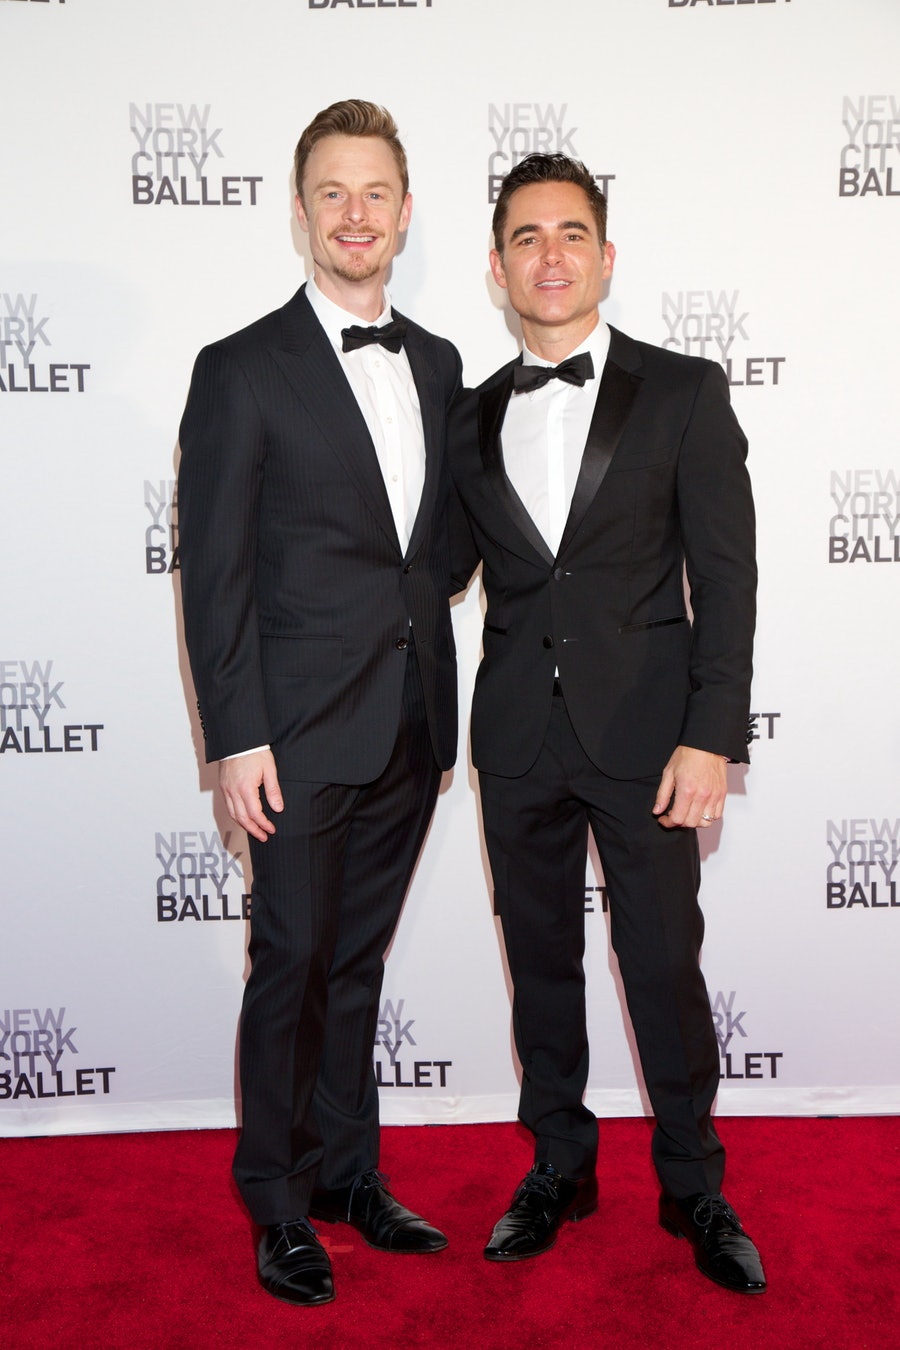 ChristopherWheeldon and Ross Rayburn